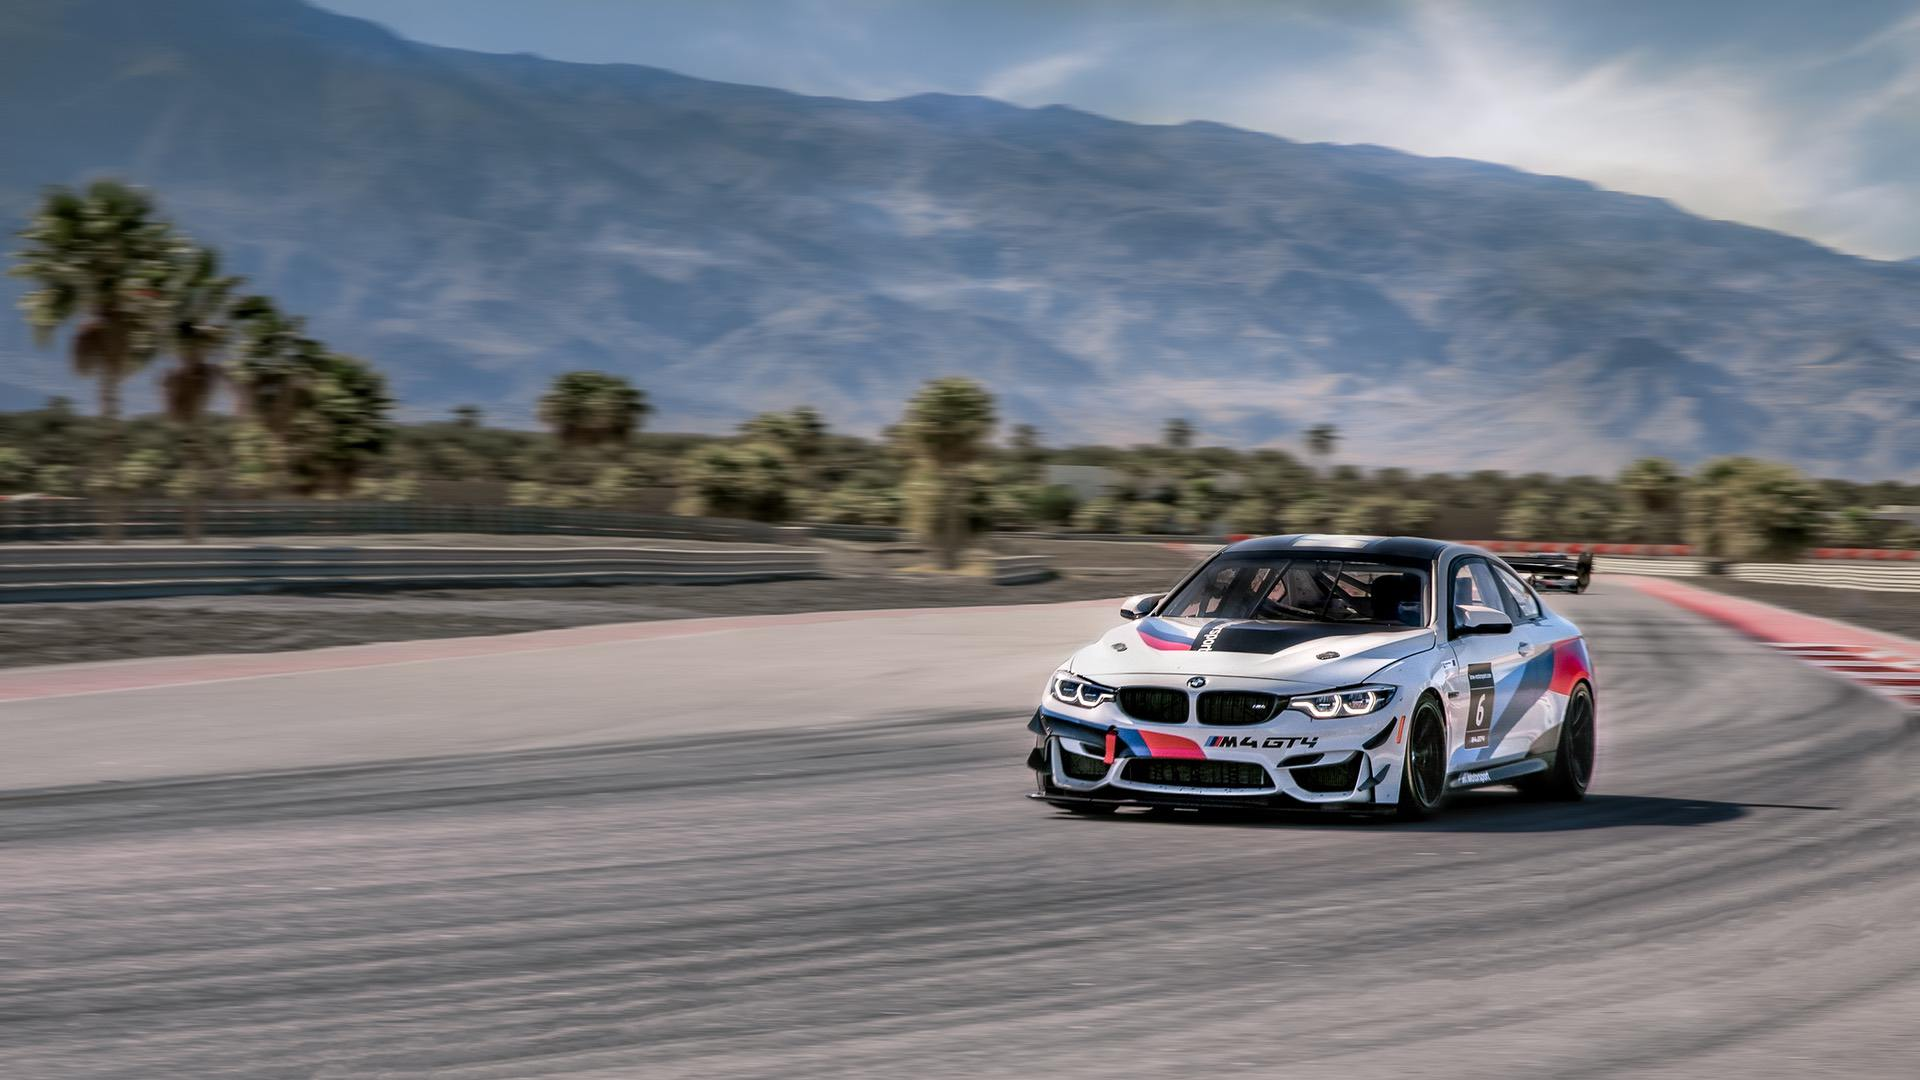 BMW M4 GT4 Onboard Lap of The Thermal Club – VIDEO